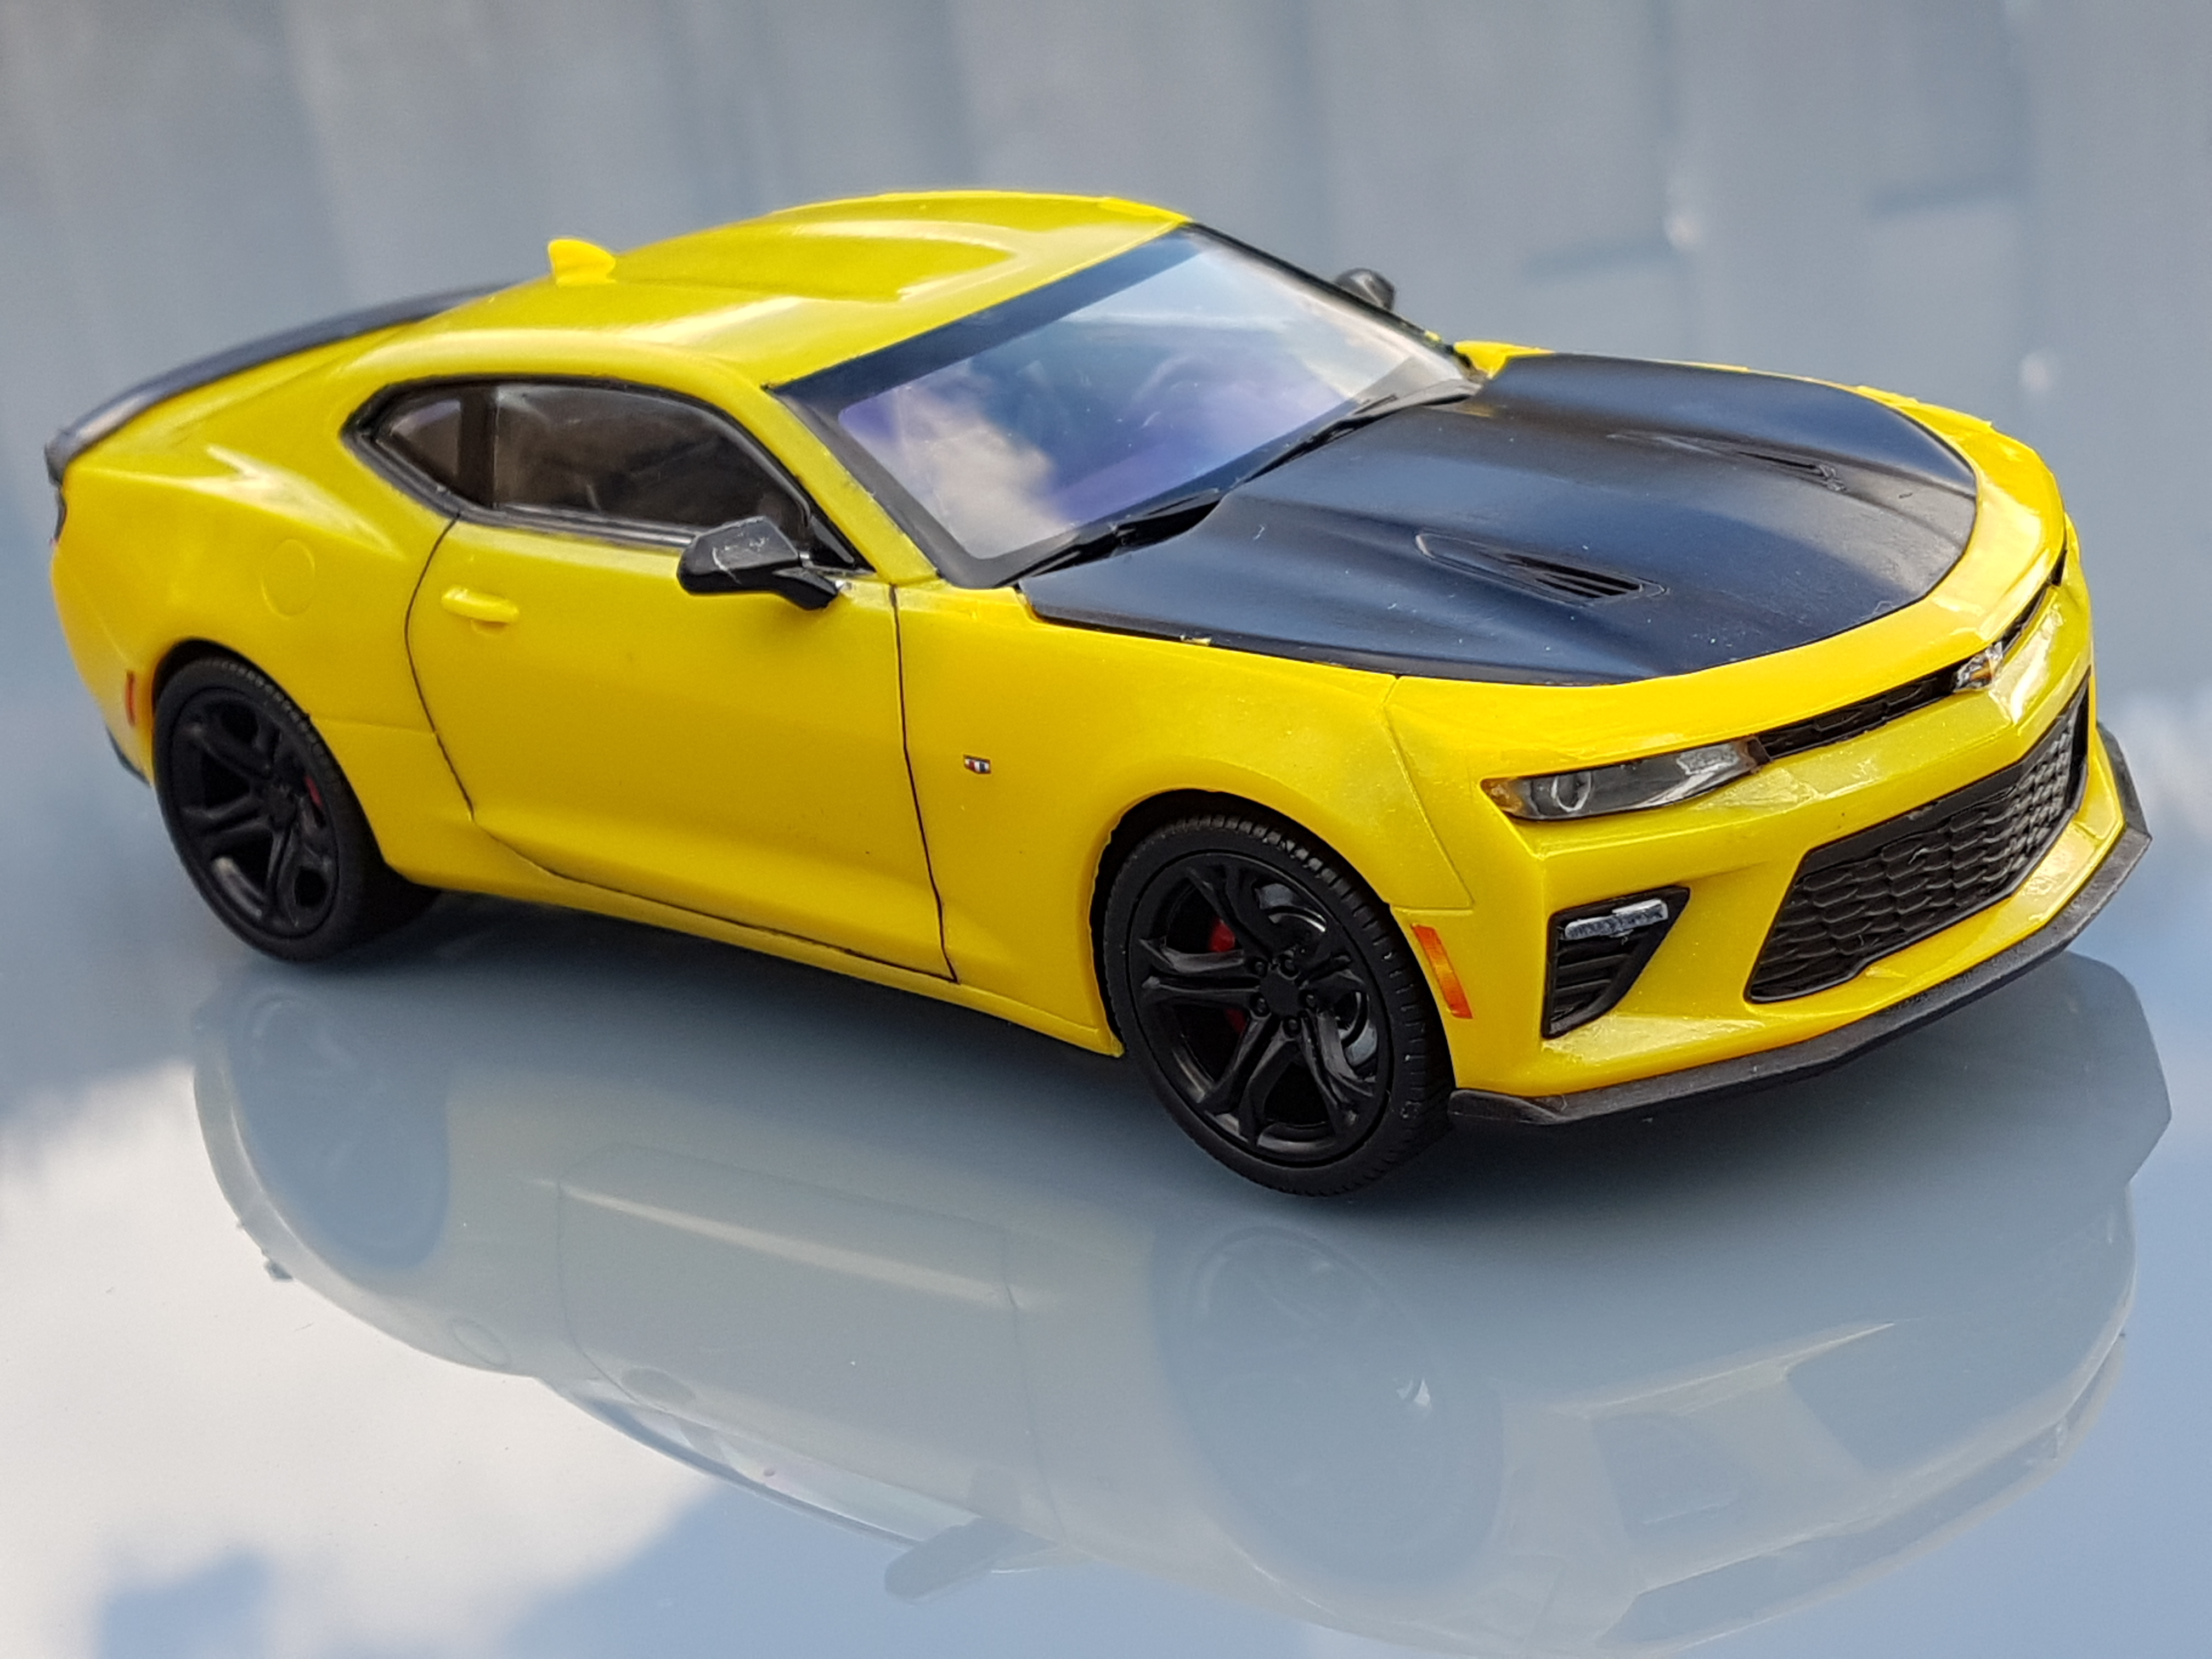 Chevrolet Ss G in addition Camaro Vietnam Veteran Wrap During likewise Mr W together with Chevrolet Camaro V Car Wallpaper likewise Camaro. on 2017 chevrolet camaro ss